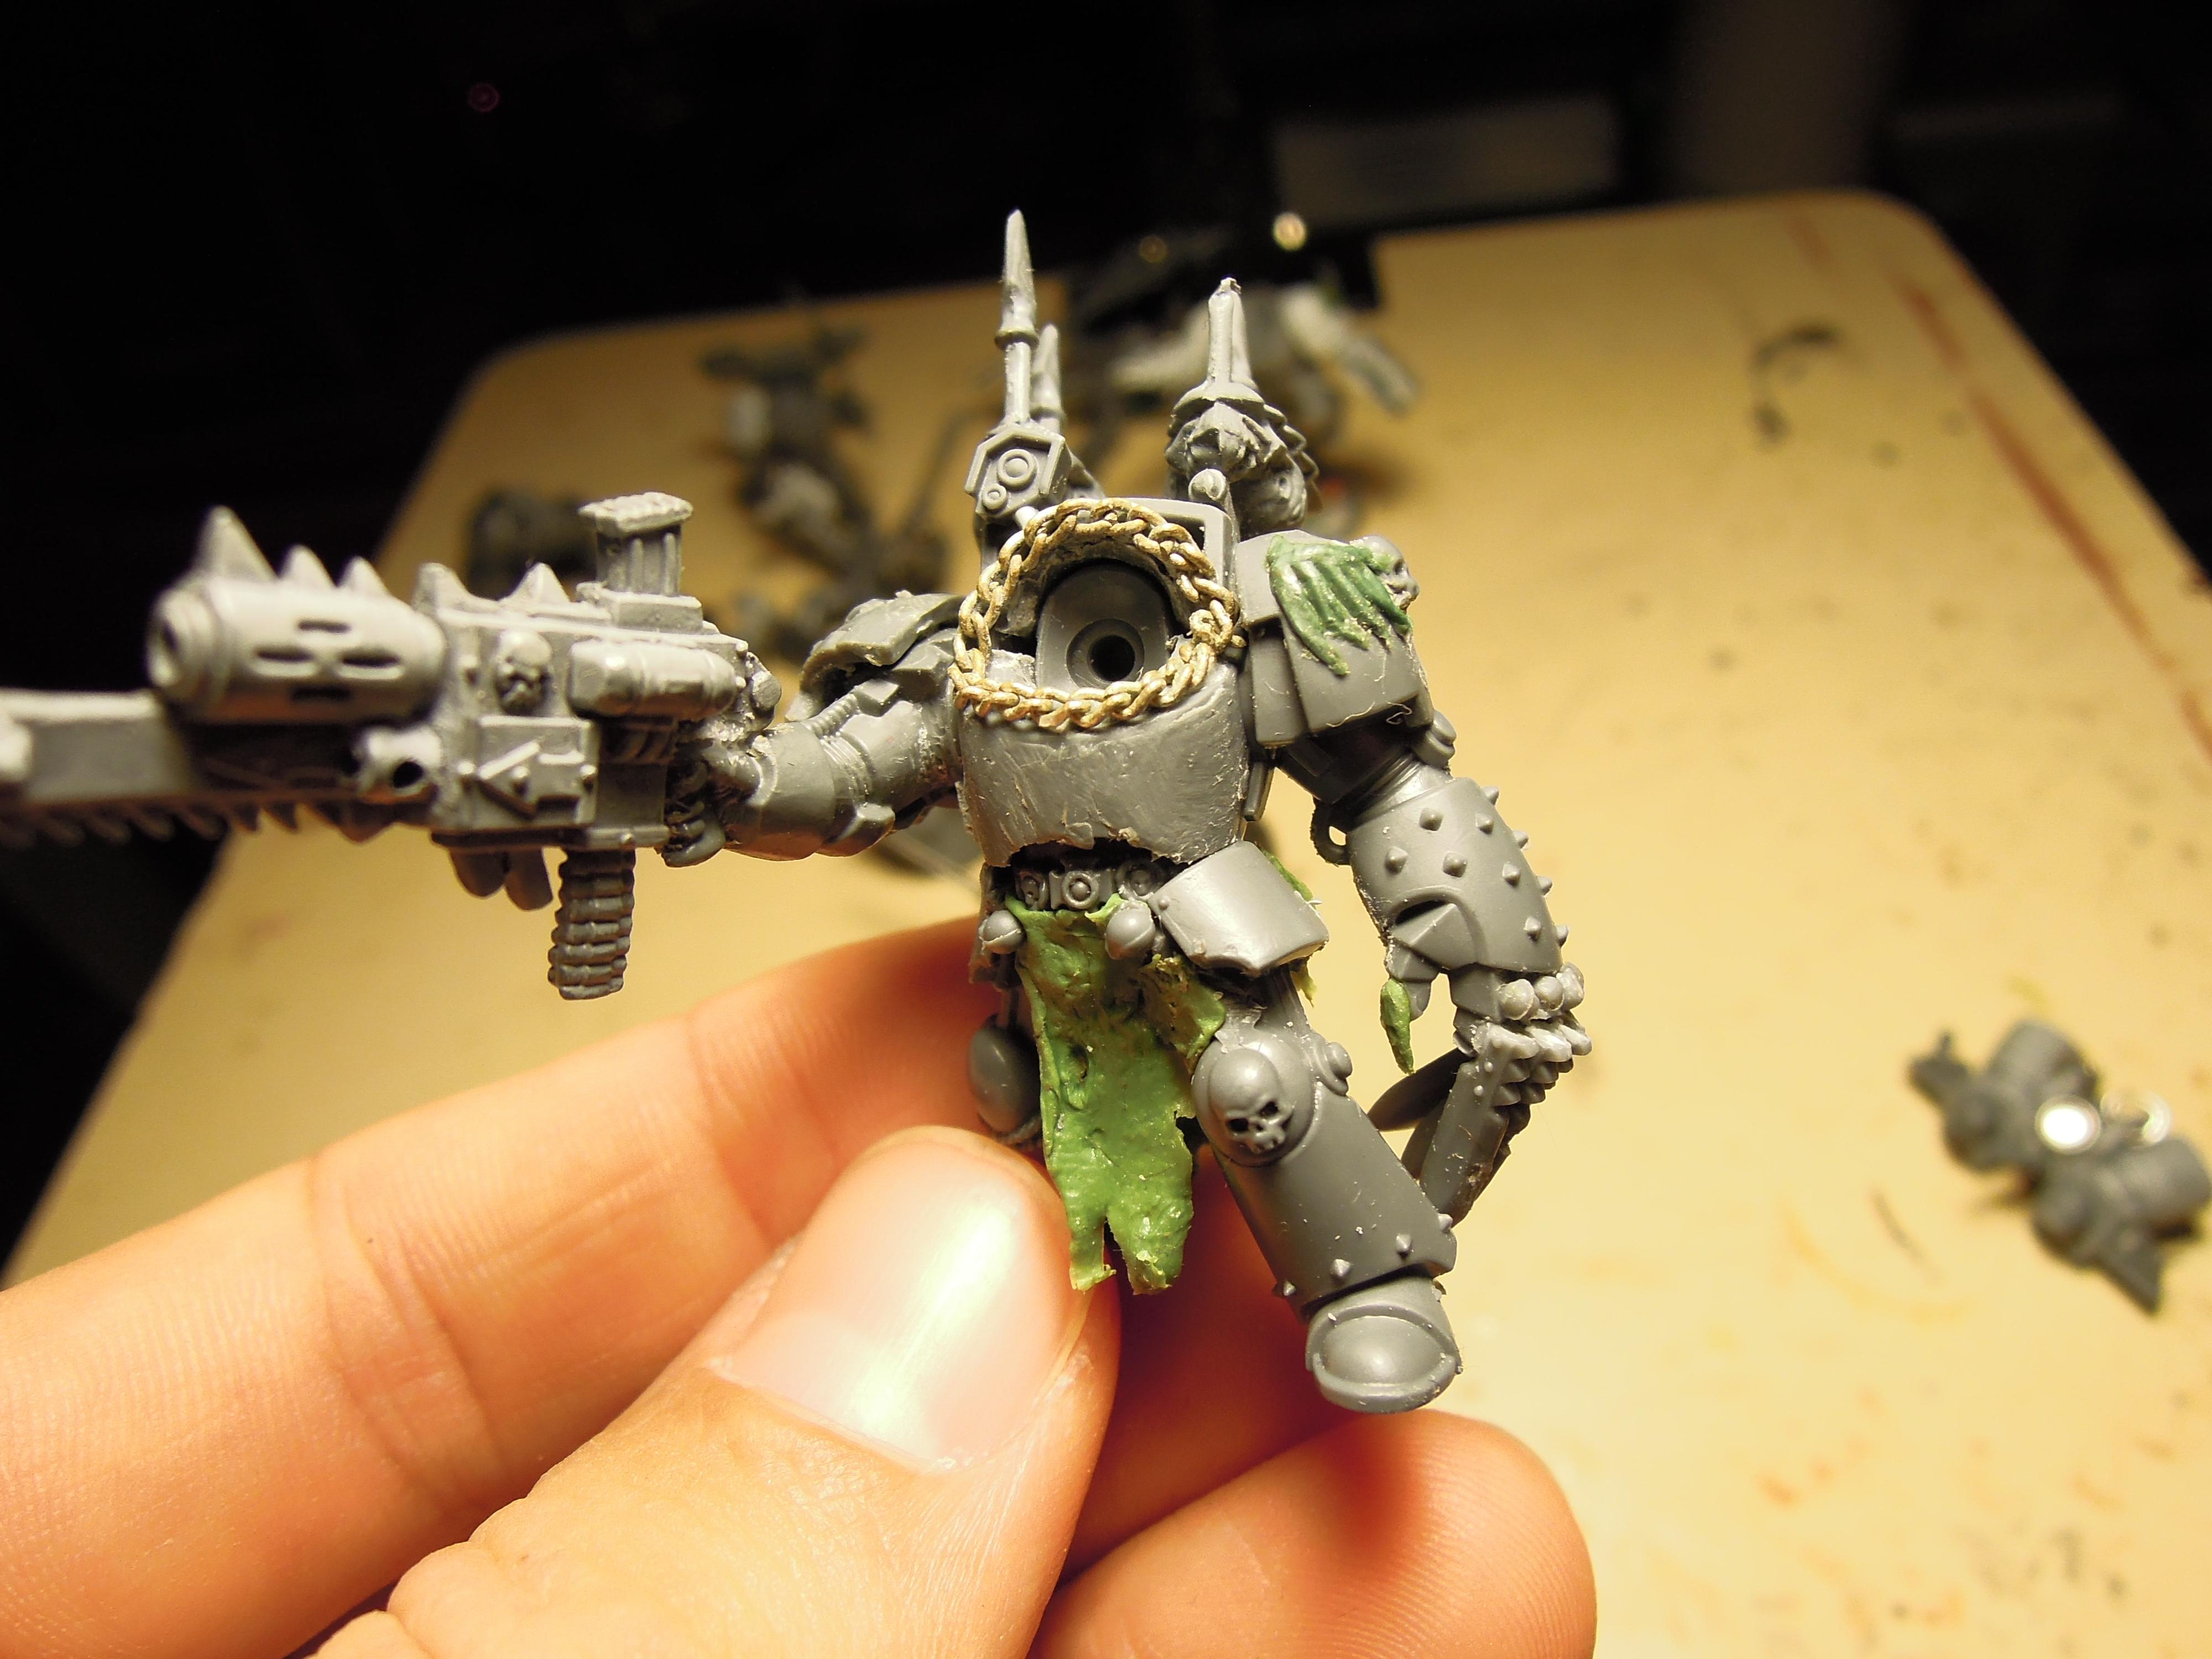 Ave Dominus Nox, Chaos, Chaos Space Marines, Chaos Undivided, Combi Weapon, Conversion, Dark Vengeance, Heretic Astartes, Kitbash, Lightning Claw, Night Lords, Power Fist, Talon, Terminator Armor, Traitor Legions, Warhammer 40,000, Work In Progress